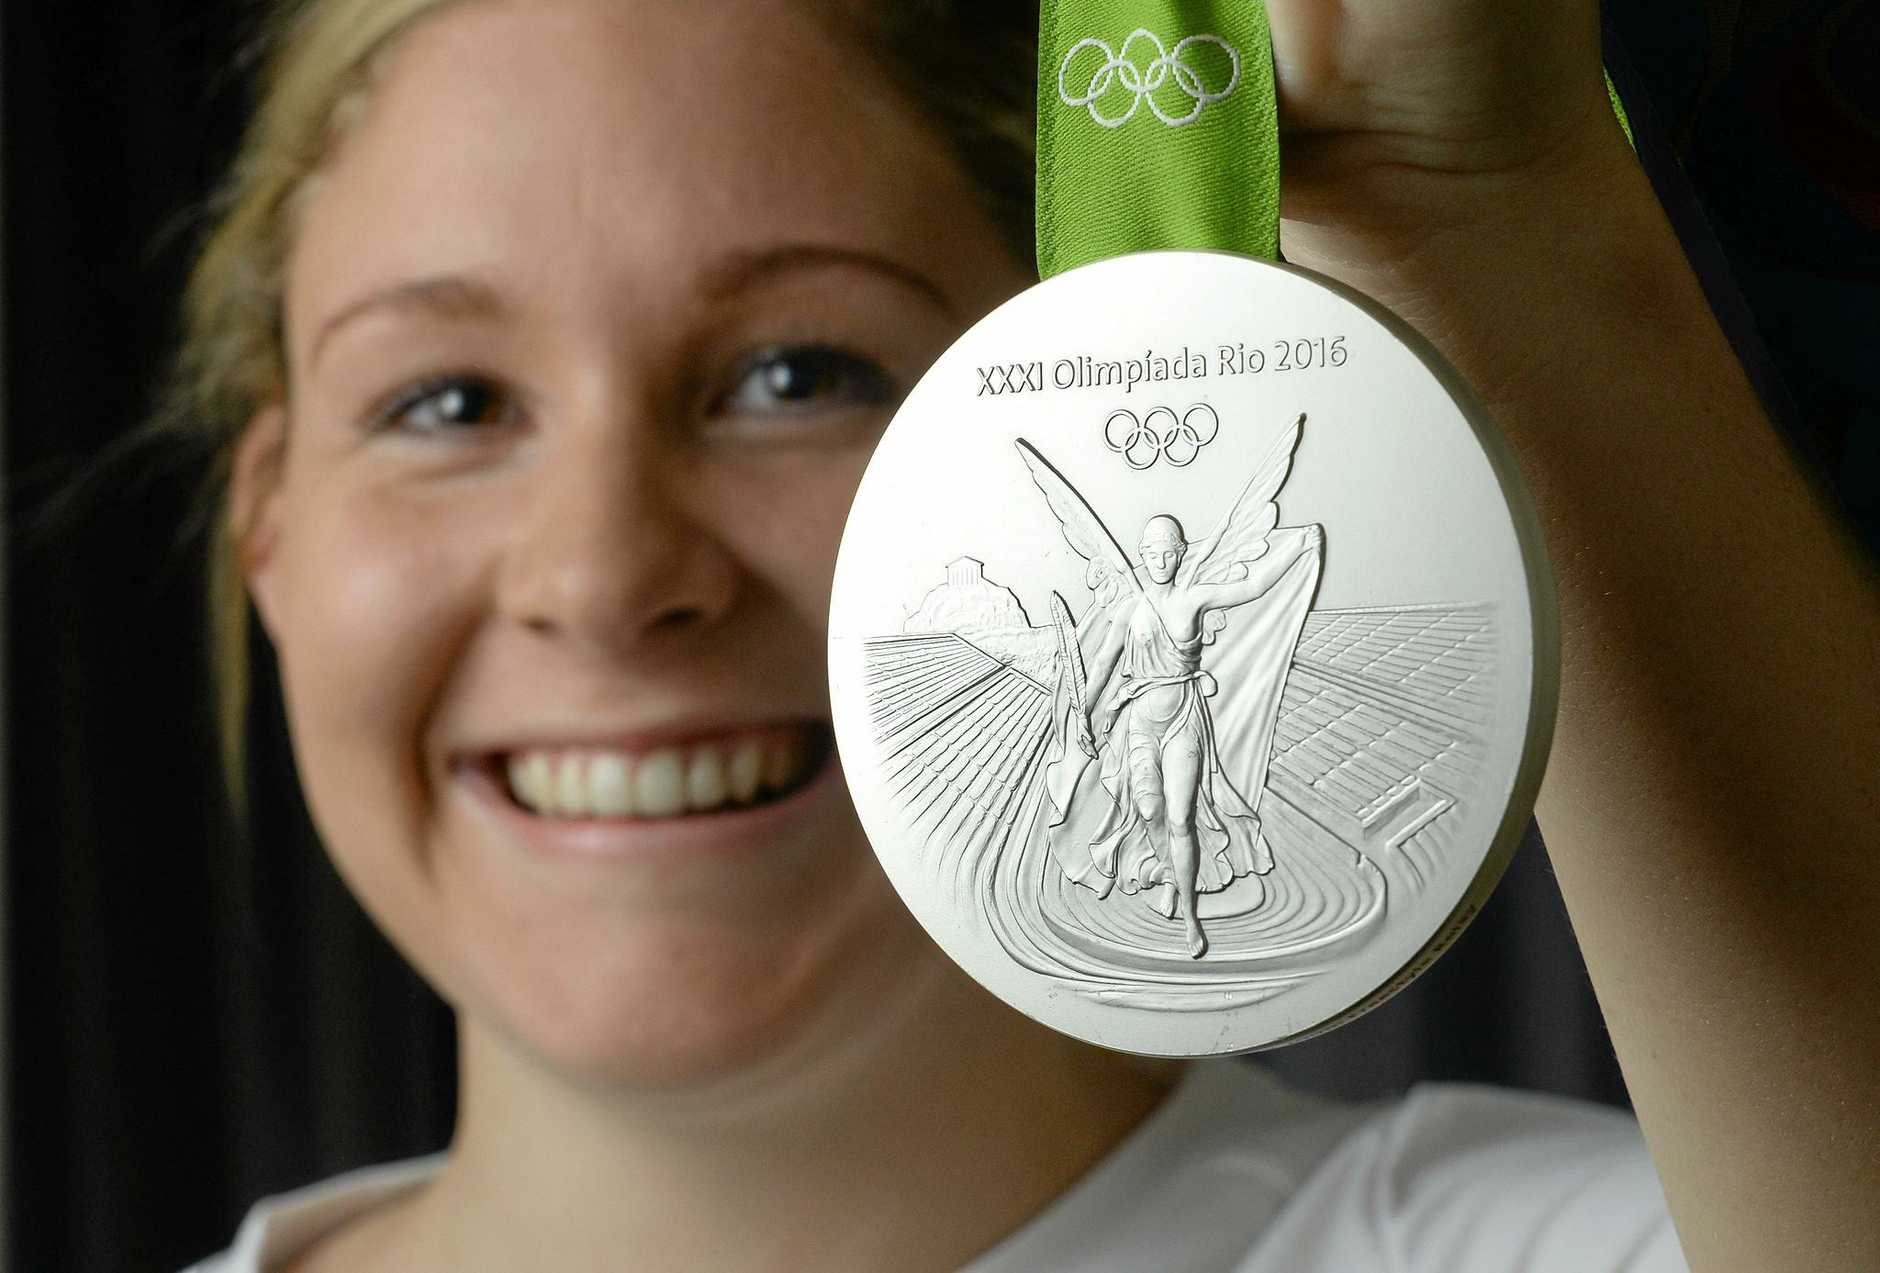 The stunning silver medal Ipswich swimmer Leah Neale won in Rio.